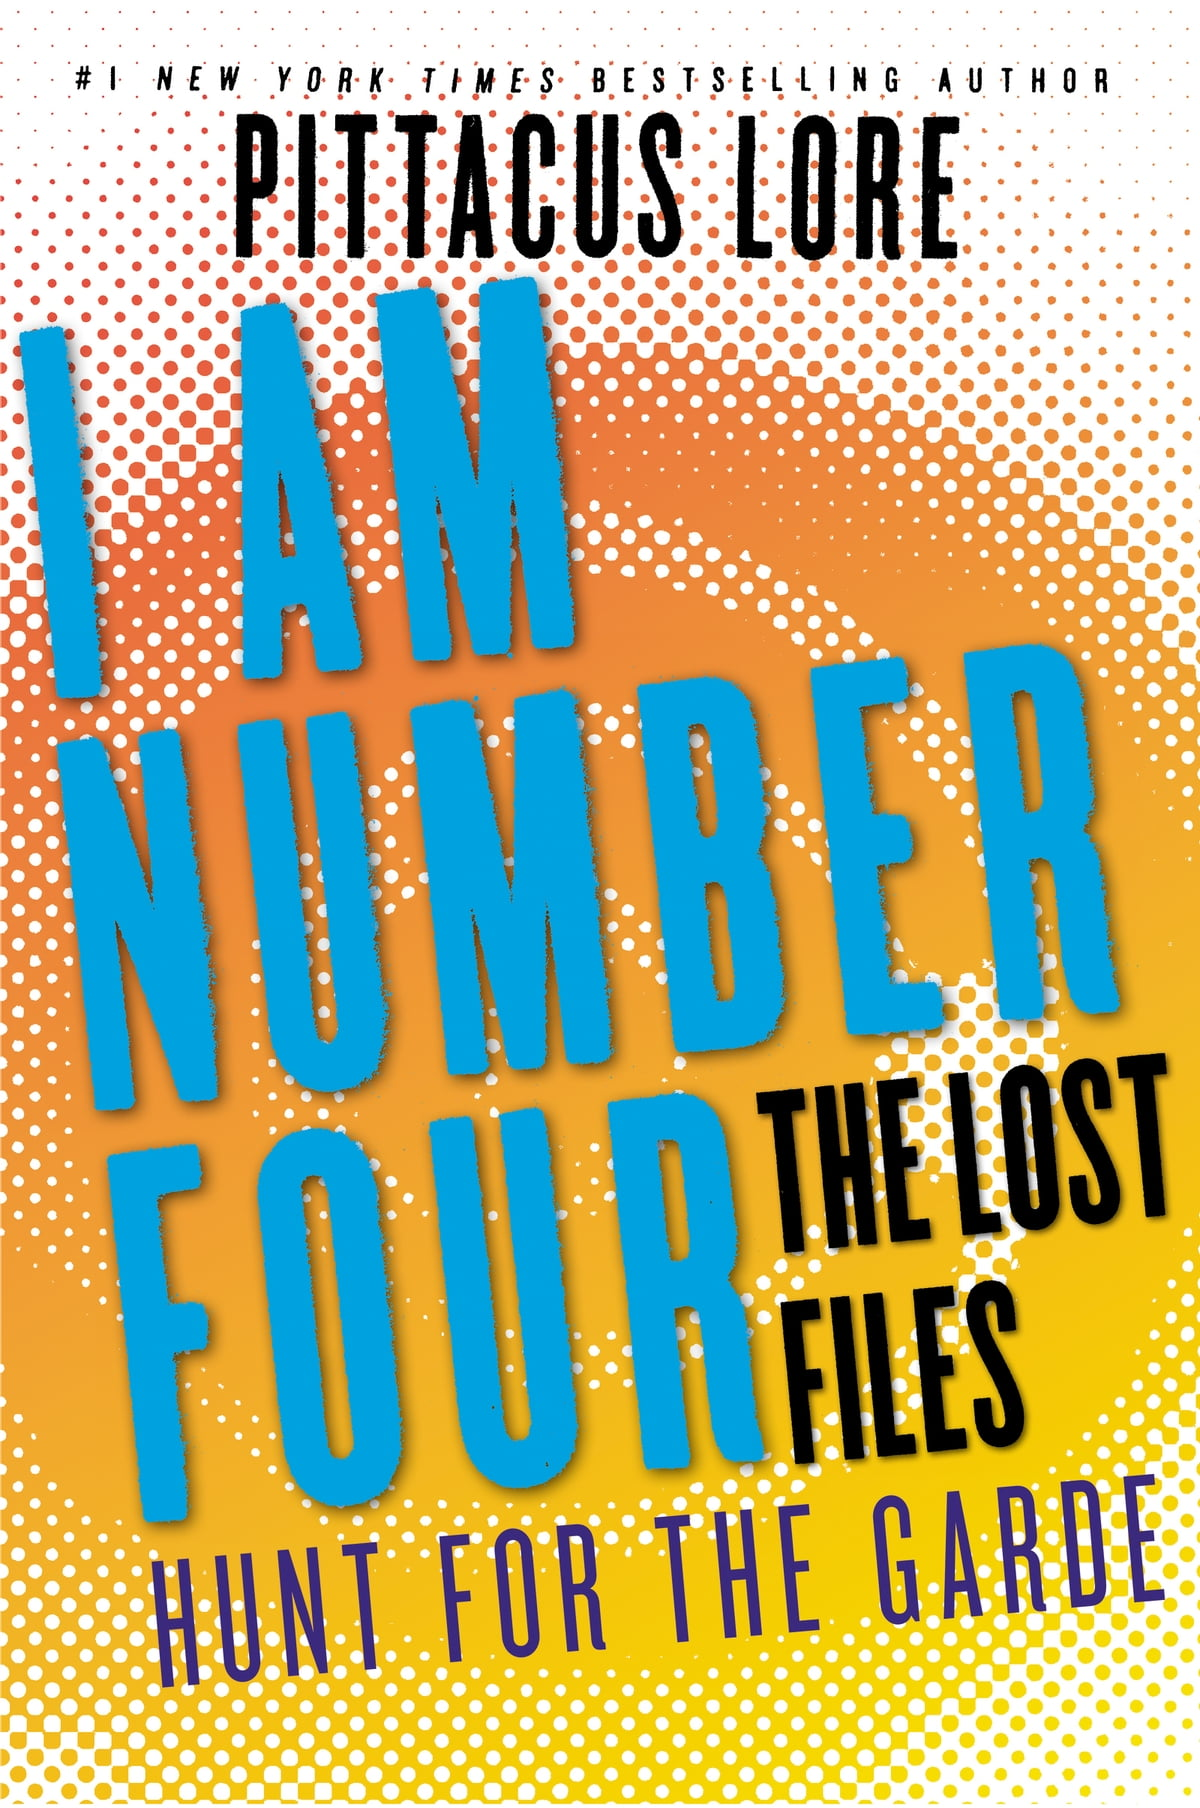 United as one ebook by pittacus lore 9780062387677 rakuten kobo i am number four the lost files hunt for the garde ebook by pittacus fandeluxe Document